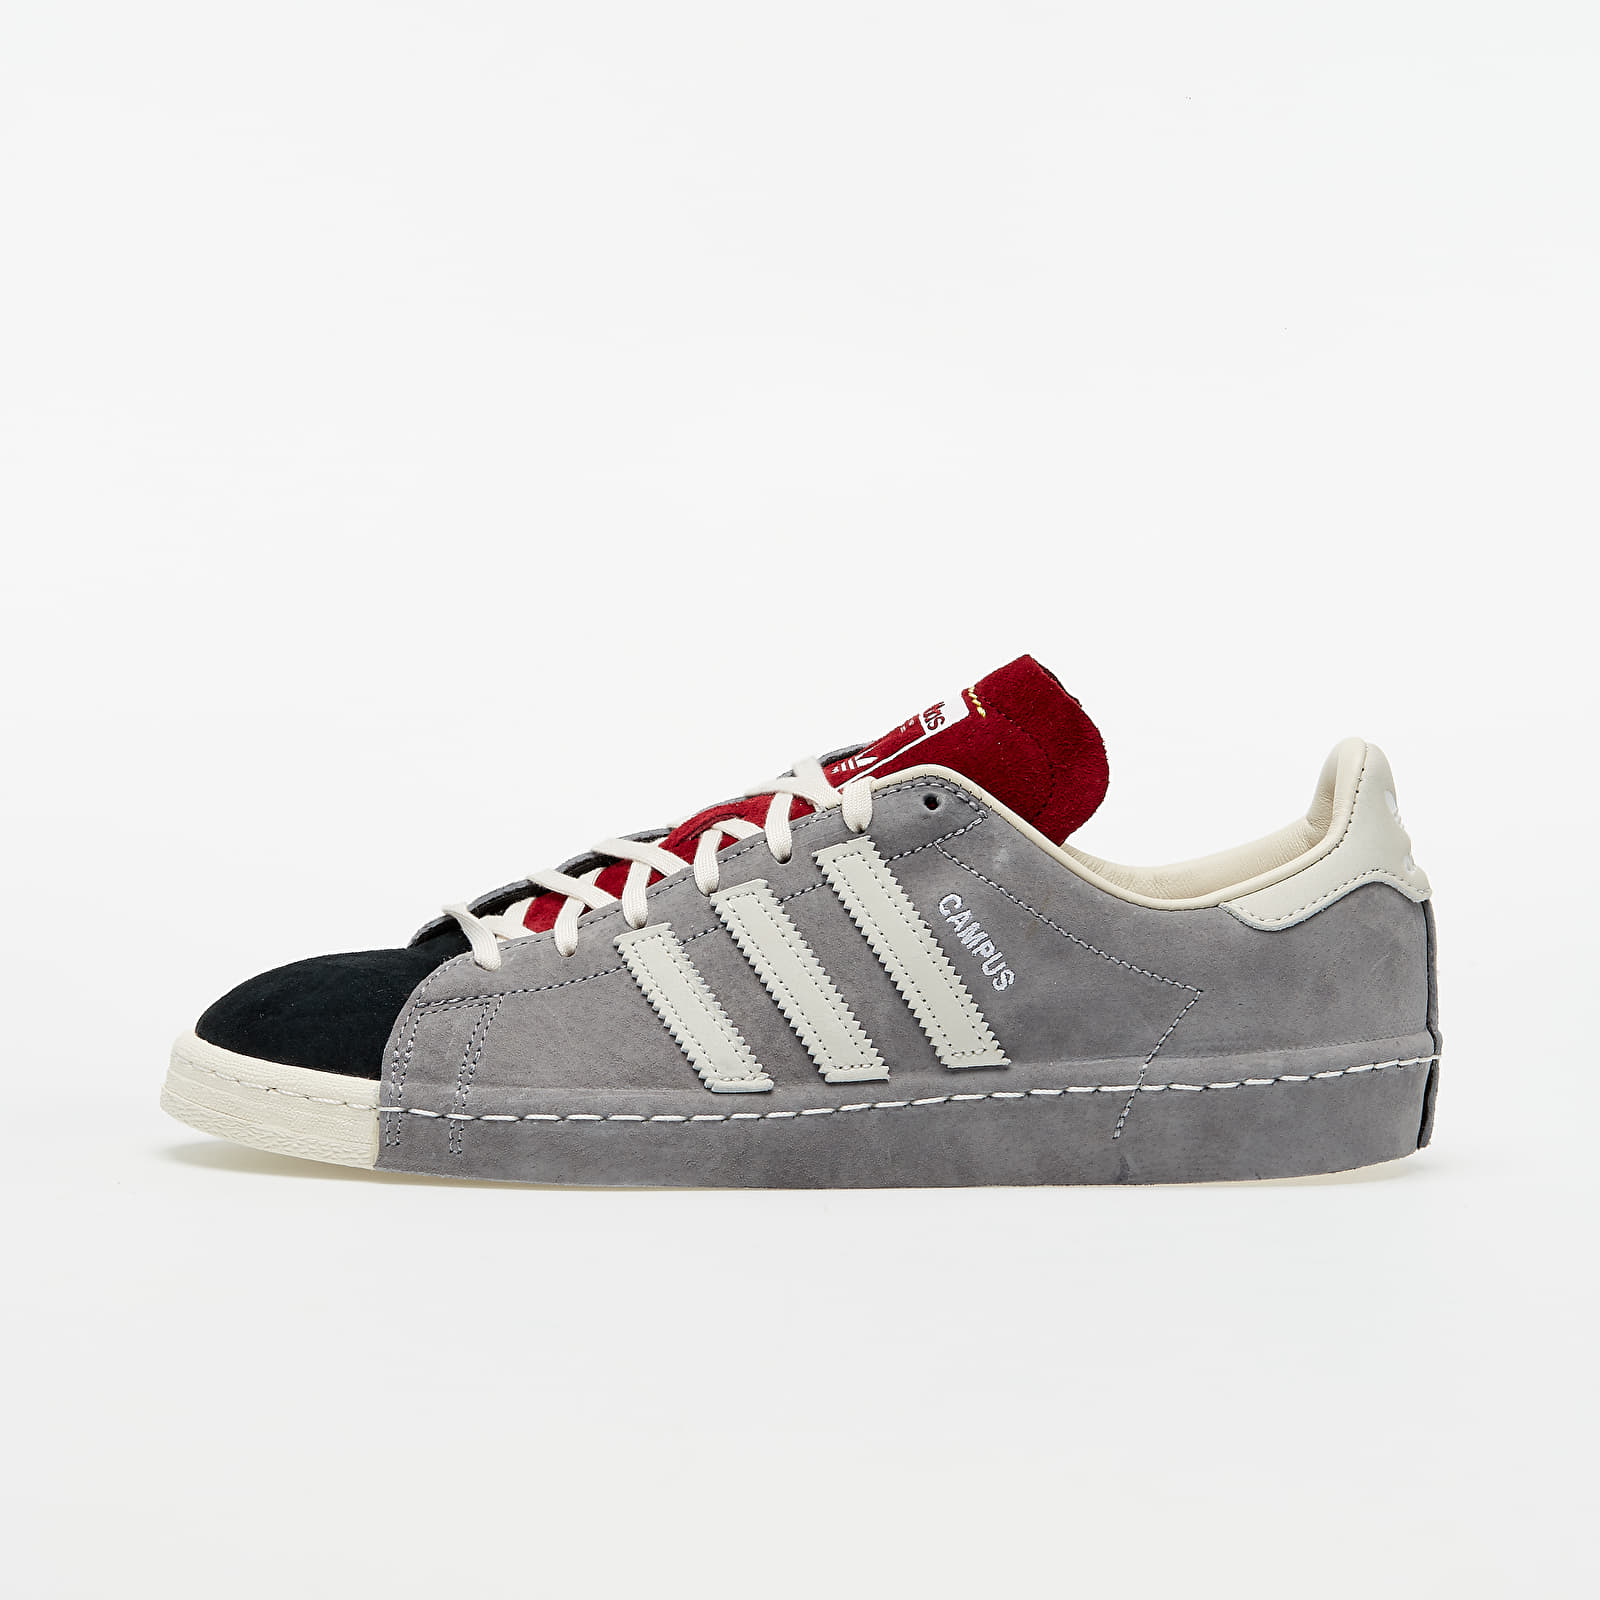 Pánské tenisky a boty adidas Consortium x Recouture Campus 80s SH Grey Three/ Chalk White/ Core black